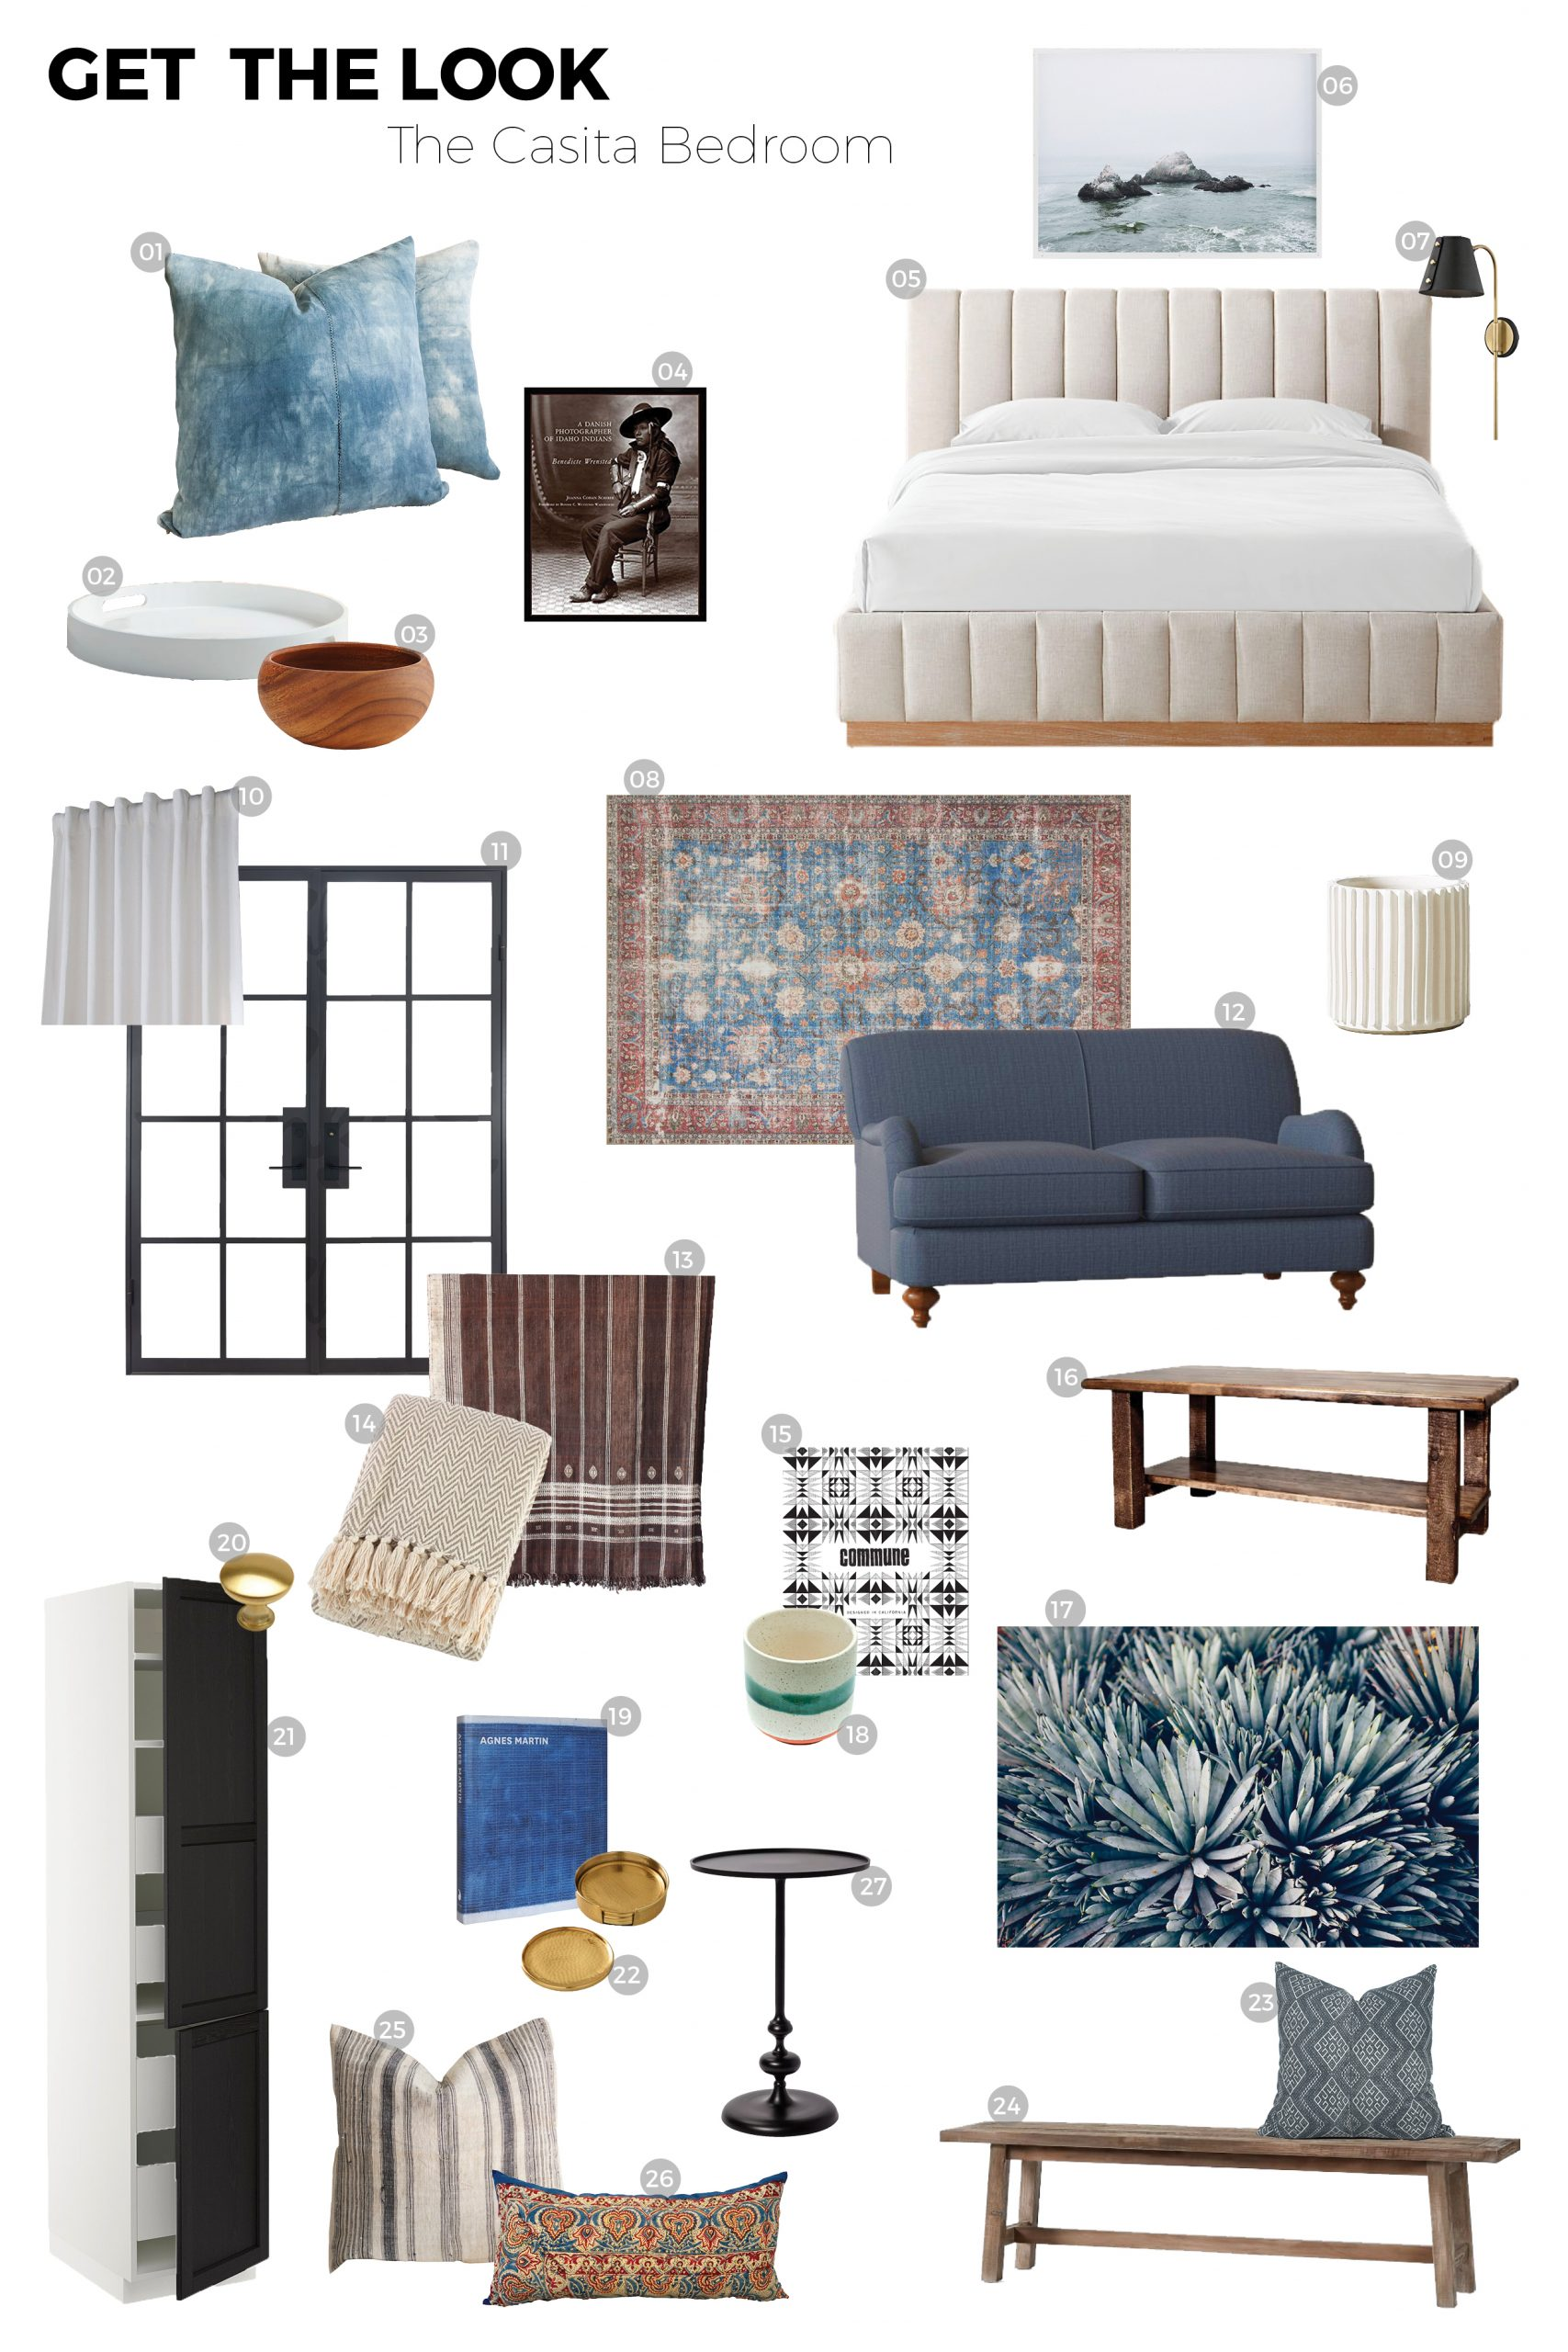 Get The Look + Casita Bedroom Sources